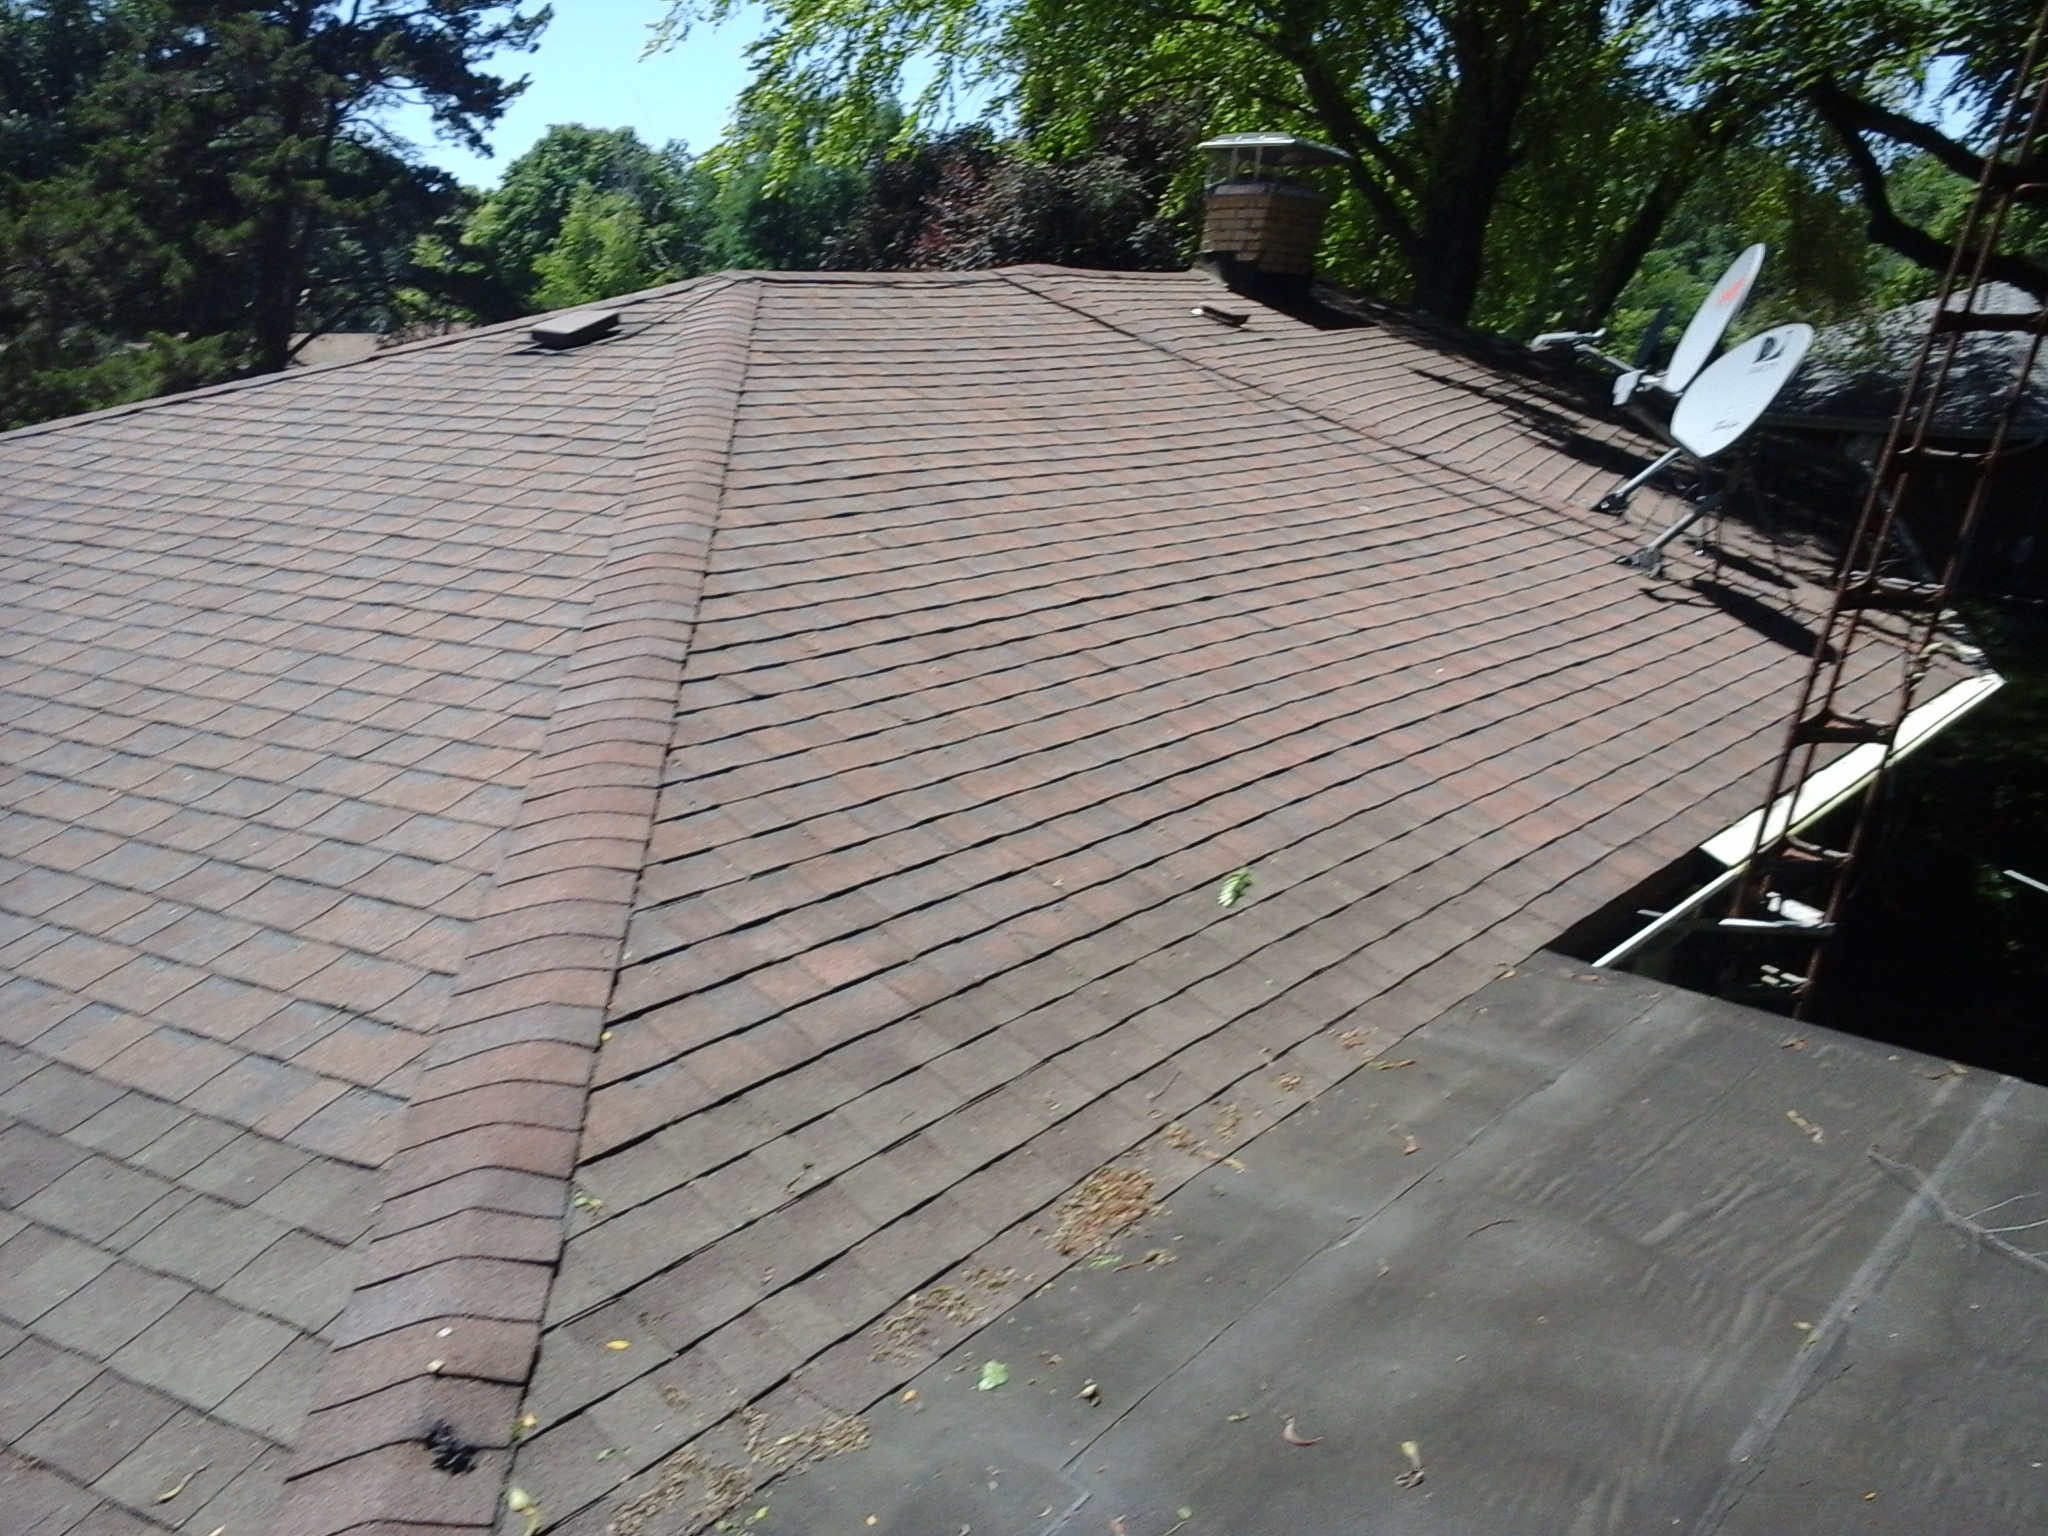 Feze Roofing - After Photo - Project Location: Aurora, IL